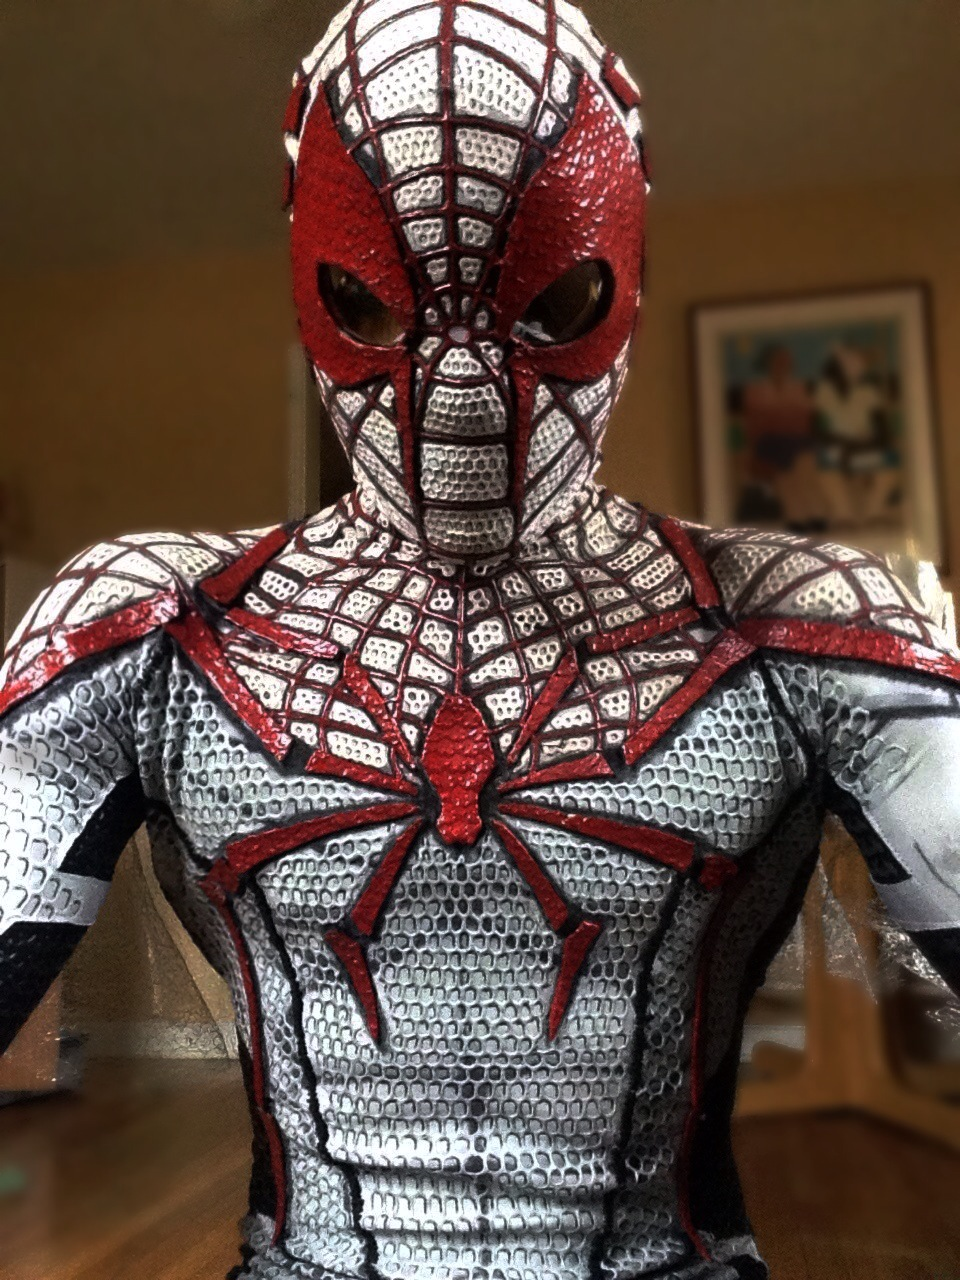 Red and White Spiderman costume by Iracel on DeviantArt